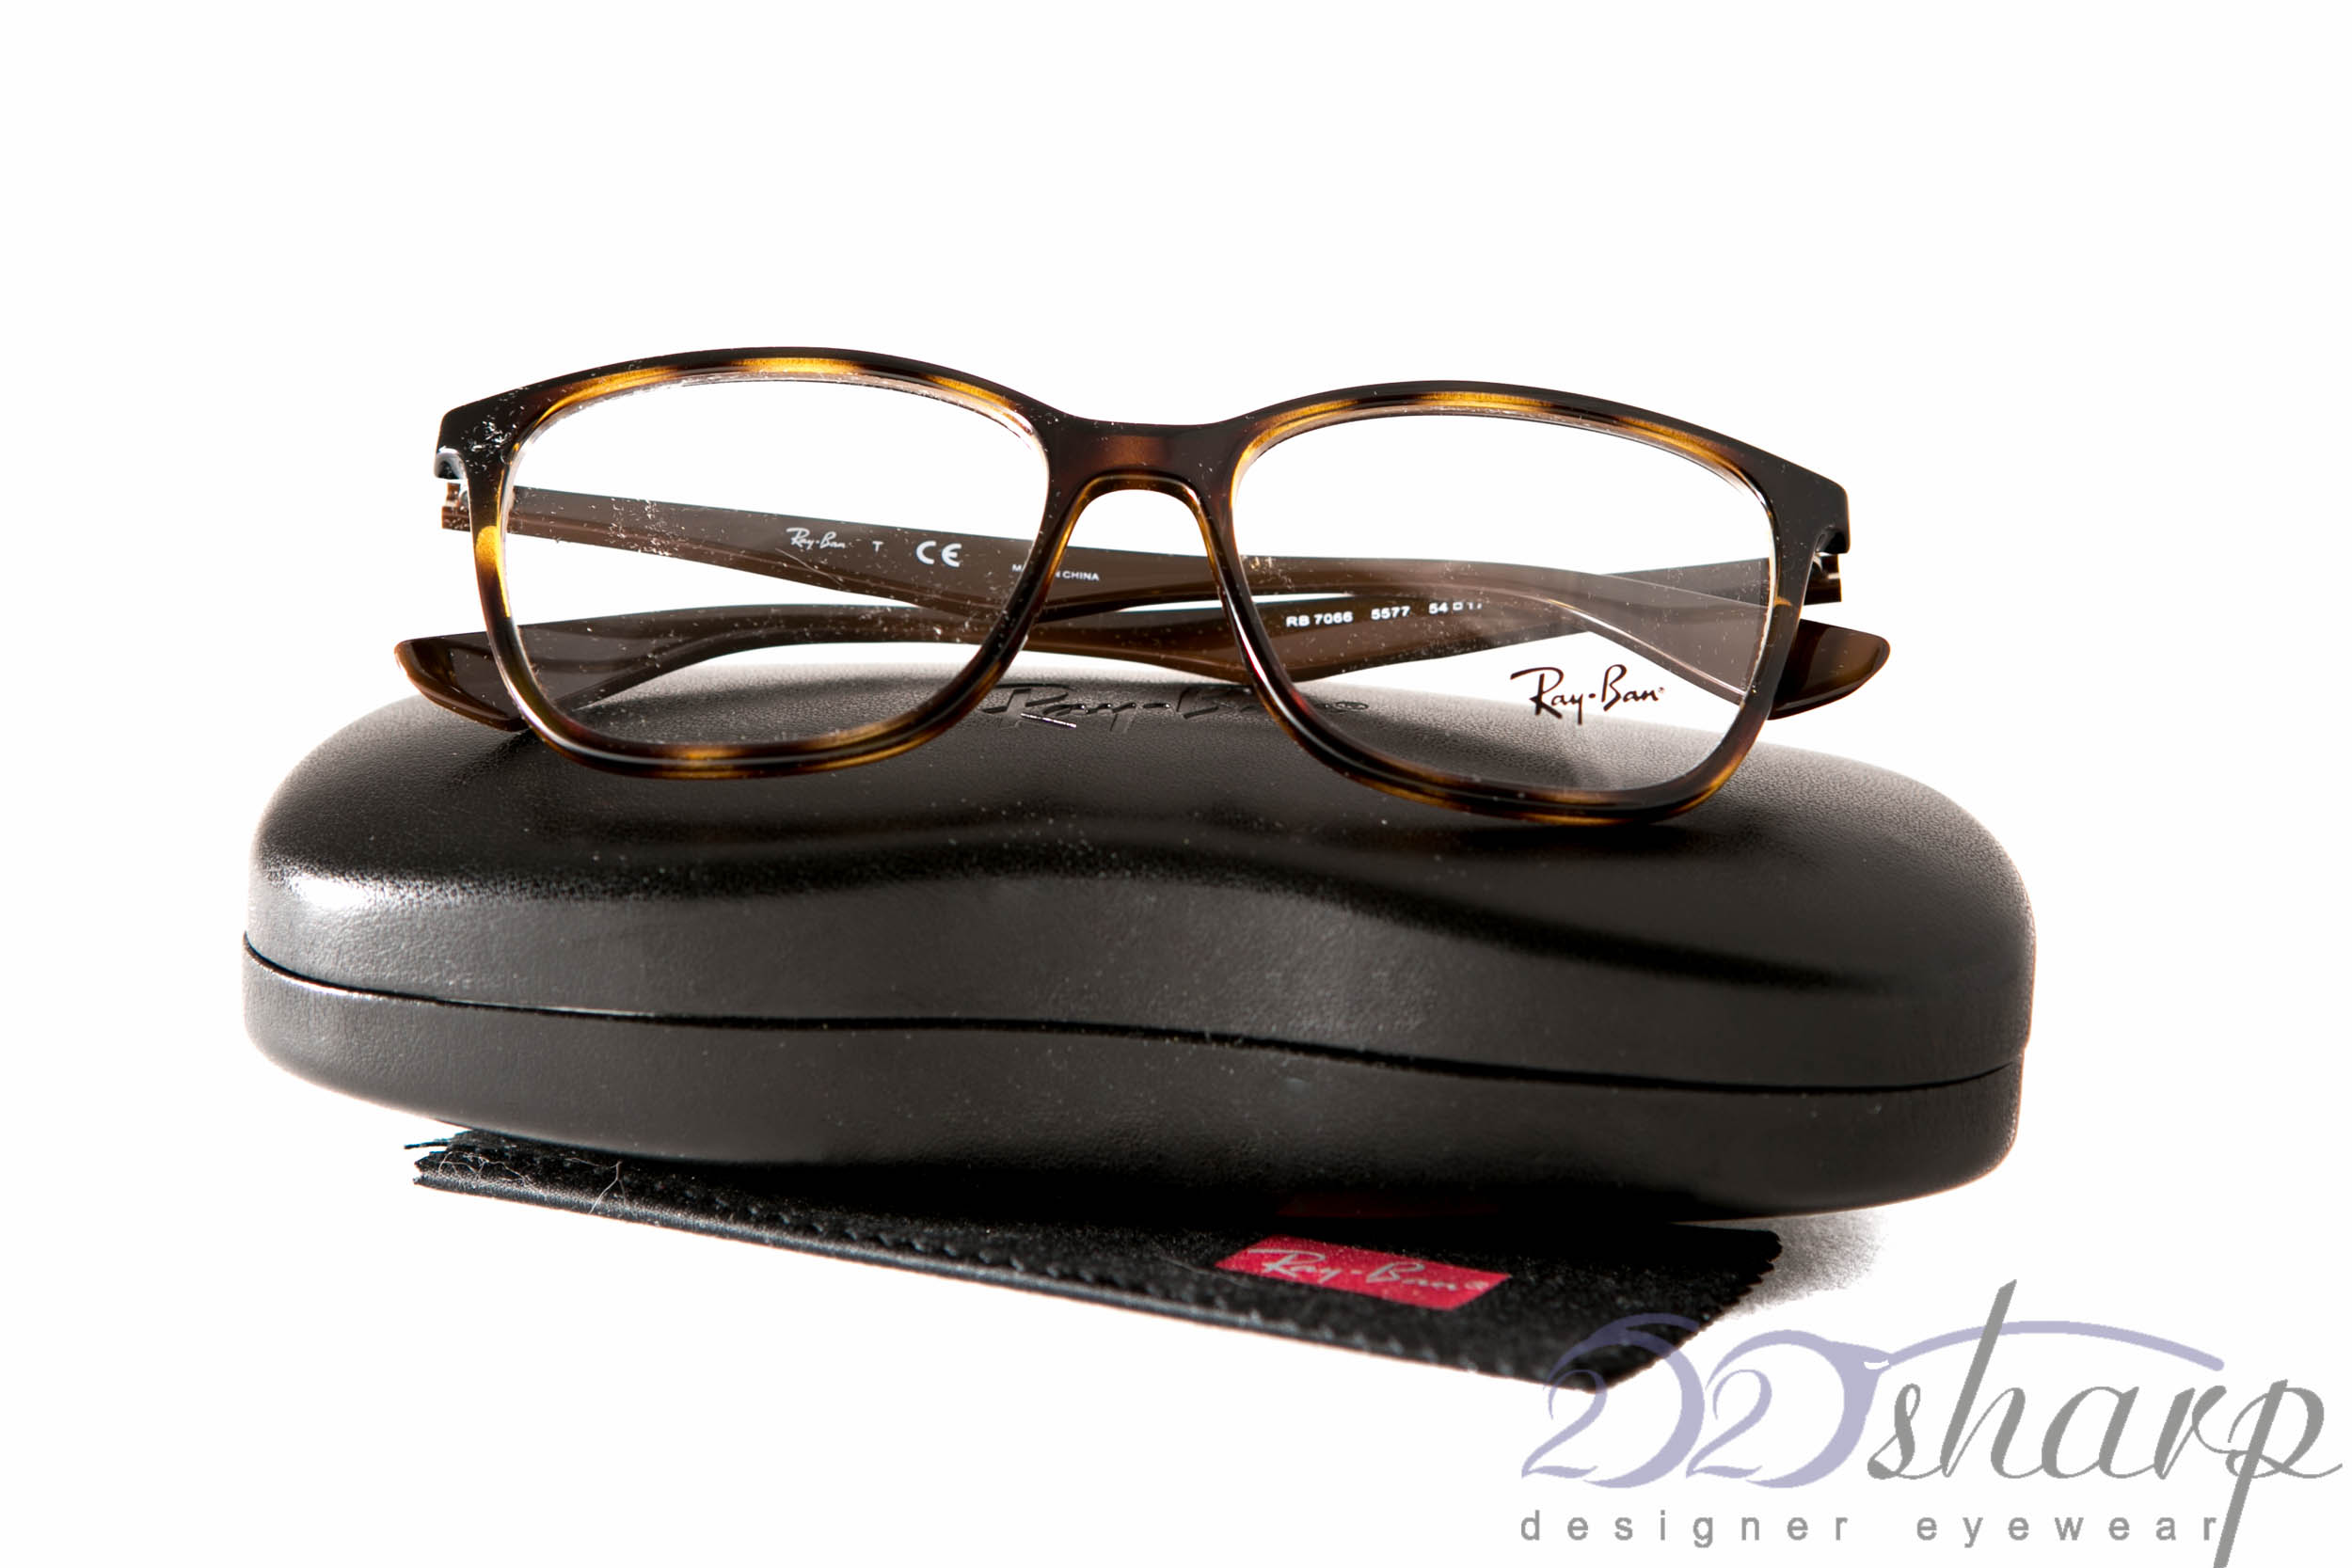 ed877dbe4d We can make high quality lenses for your frames.